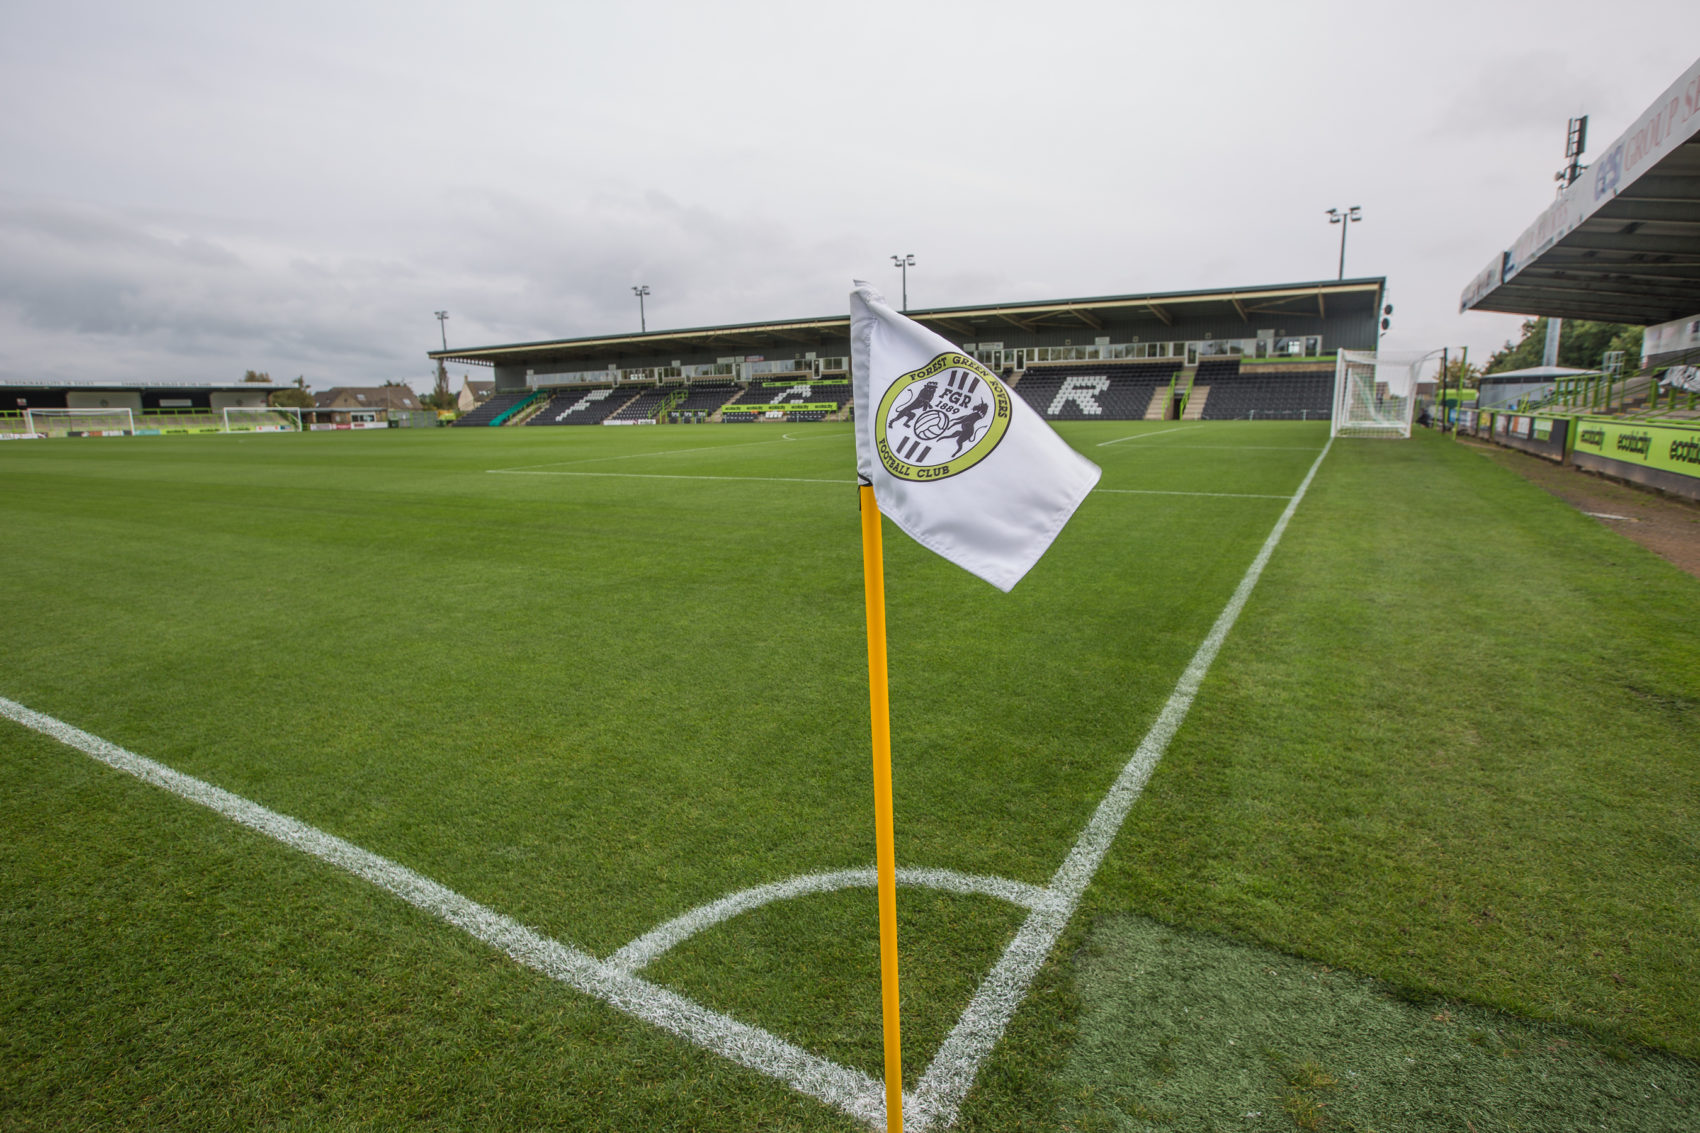 The Pitch at New Lawn. (Courtesy Forest Green Rovers.